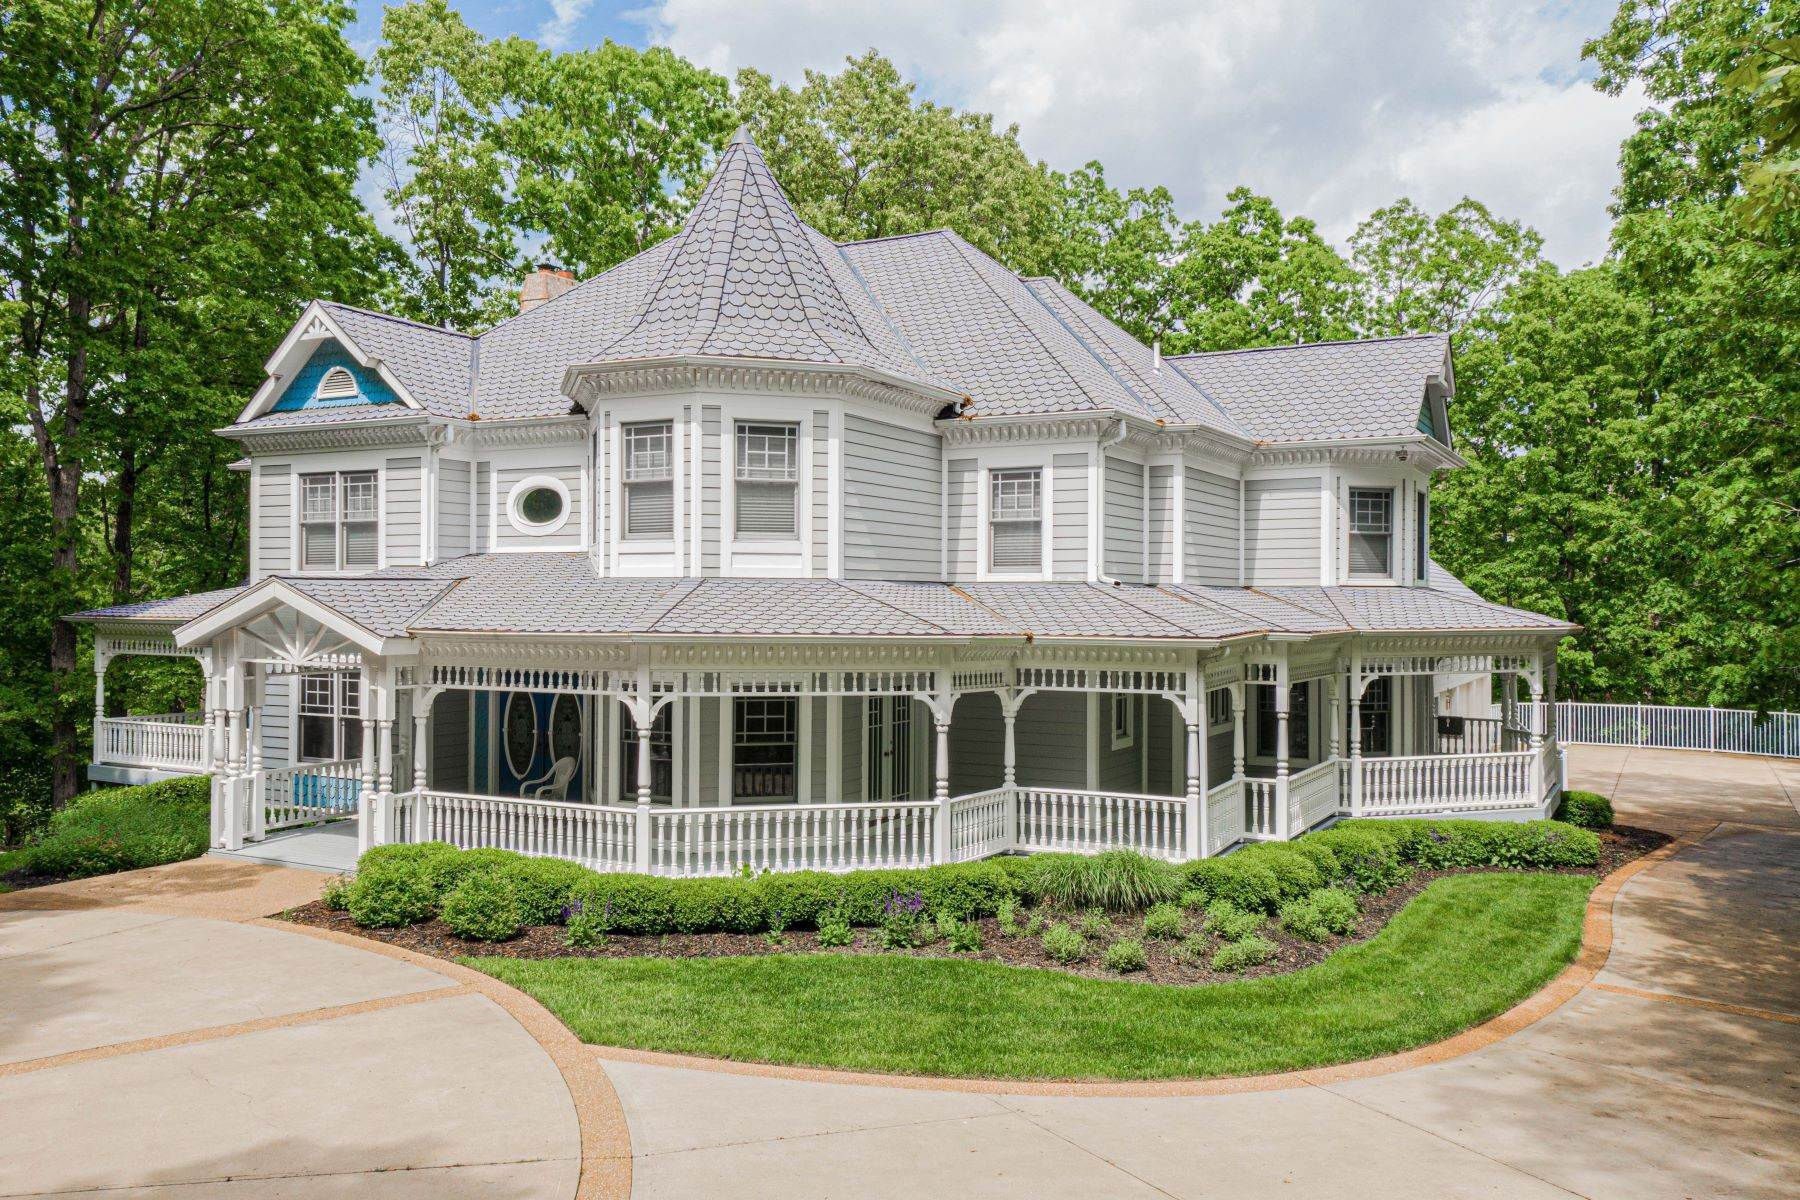 Single Family Homes for Sale at incredible Queen Anne style Victorian in Wildwood 19105 Towering Timber Court Pacific, Missouri 63069 United States